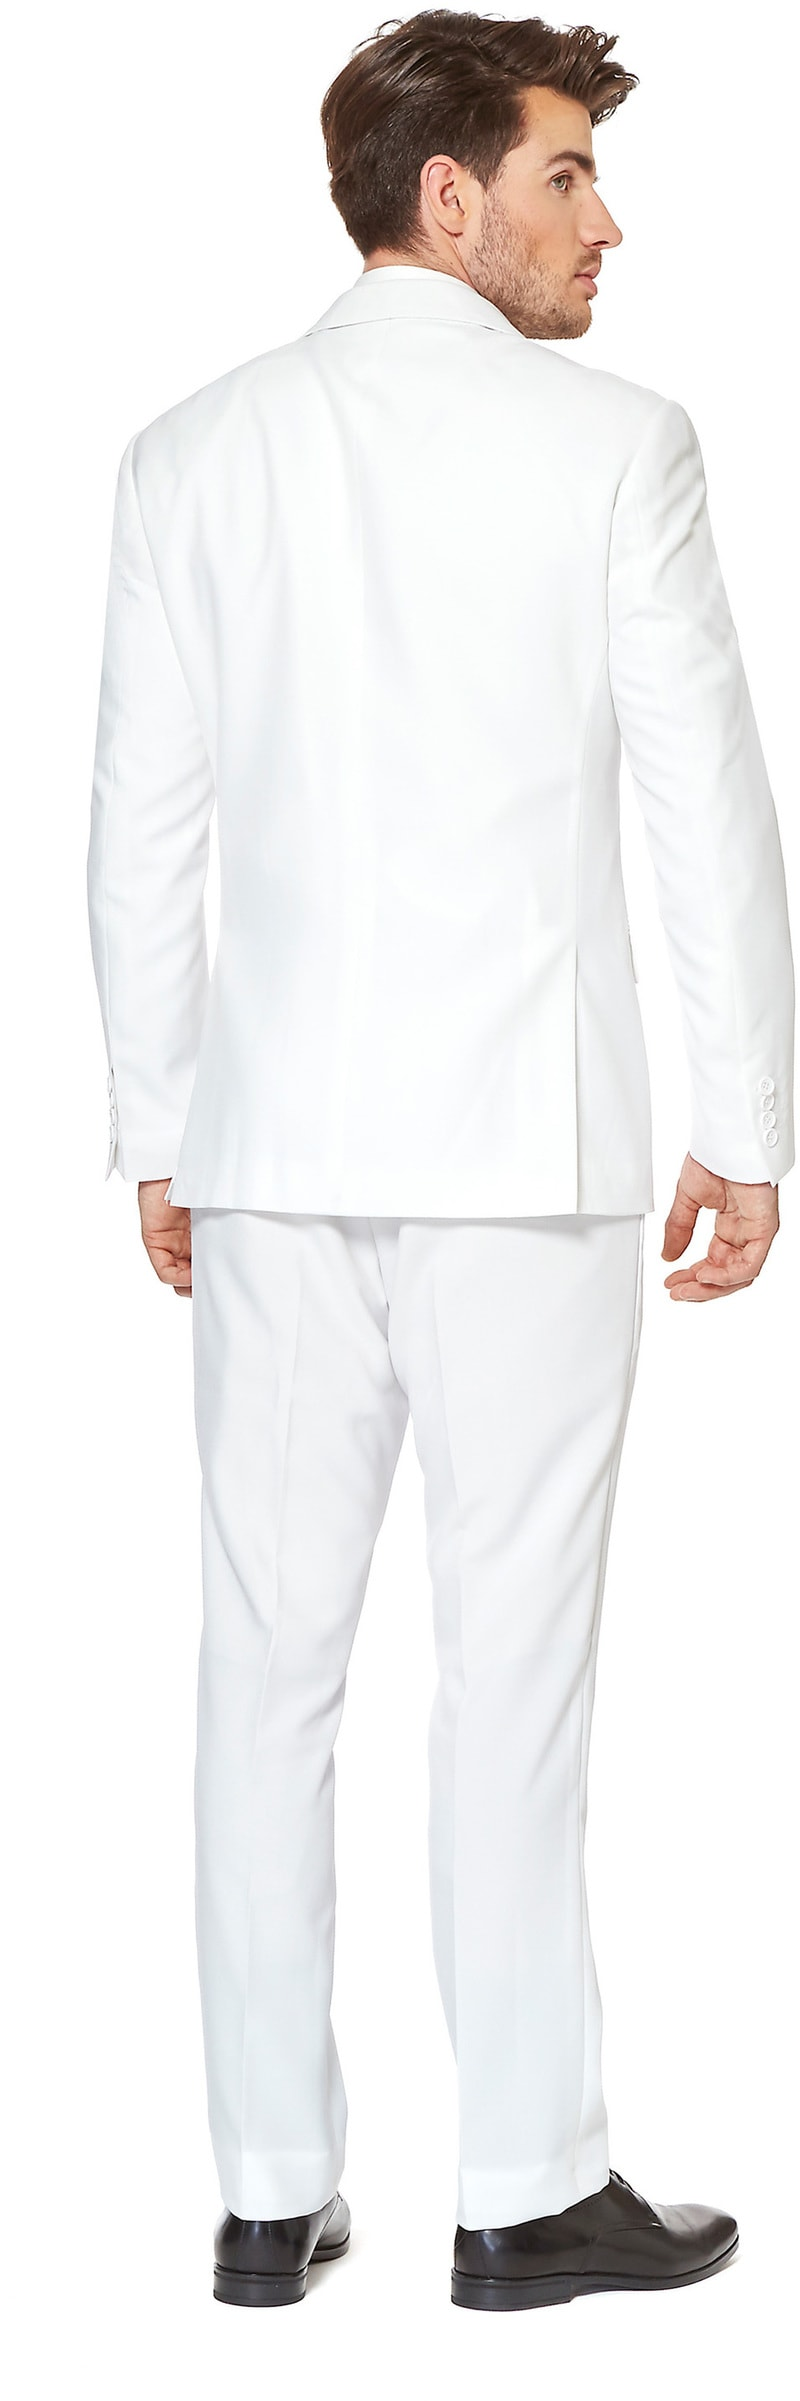 OppoSuits White Knight Suit photo 1